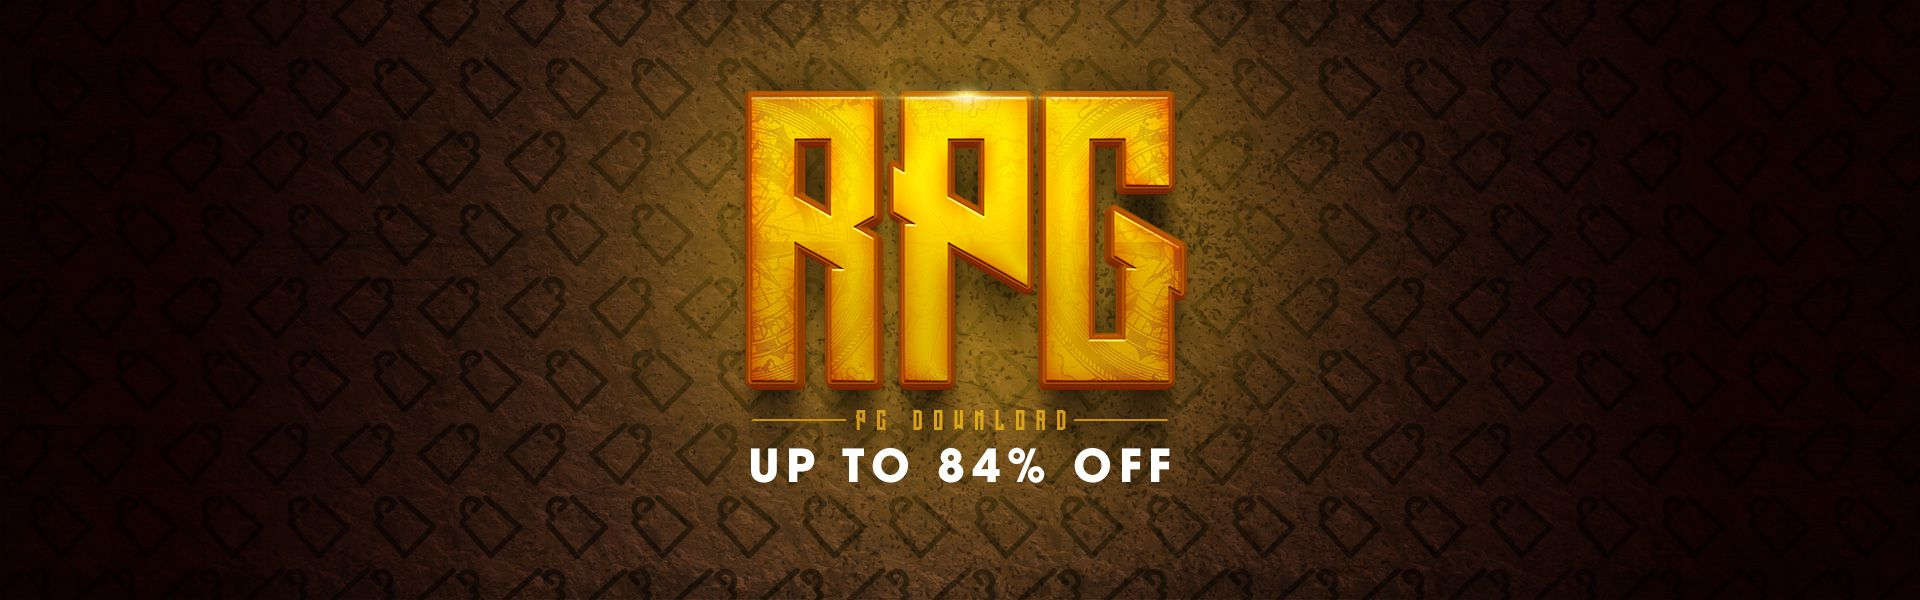 RPG Sale - pc download